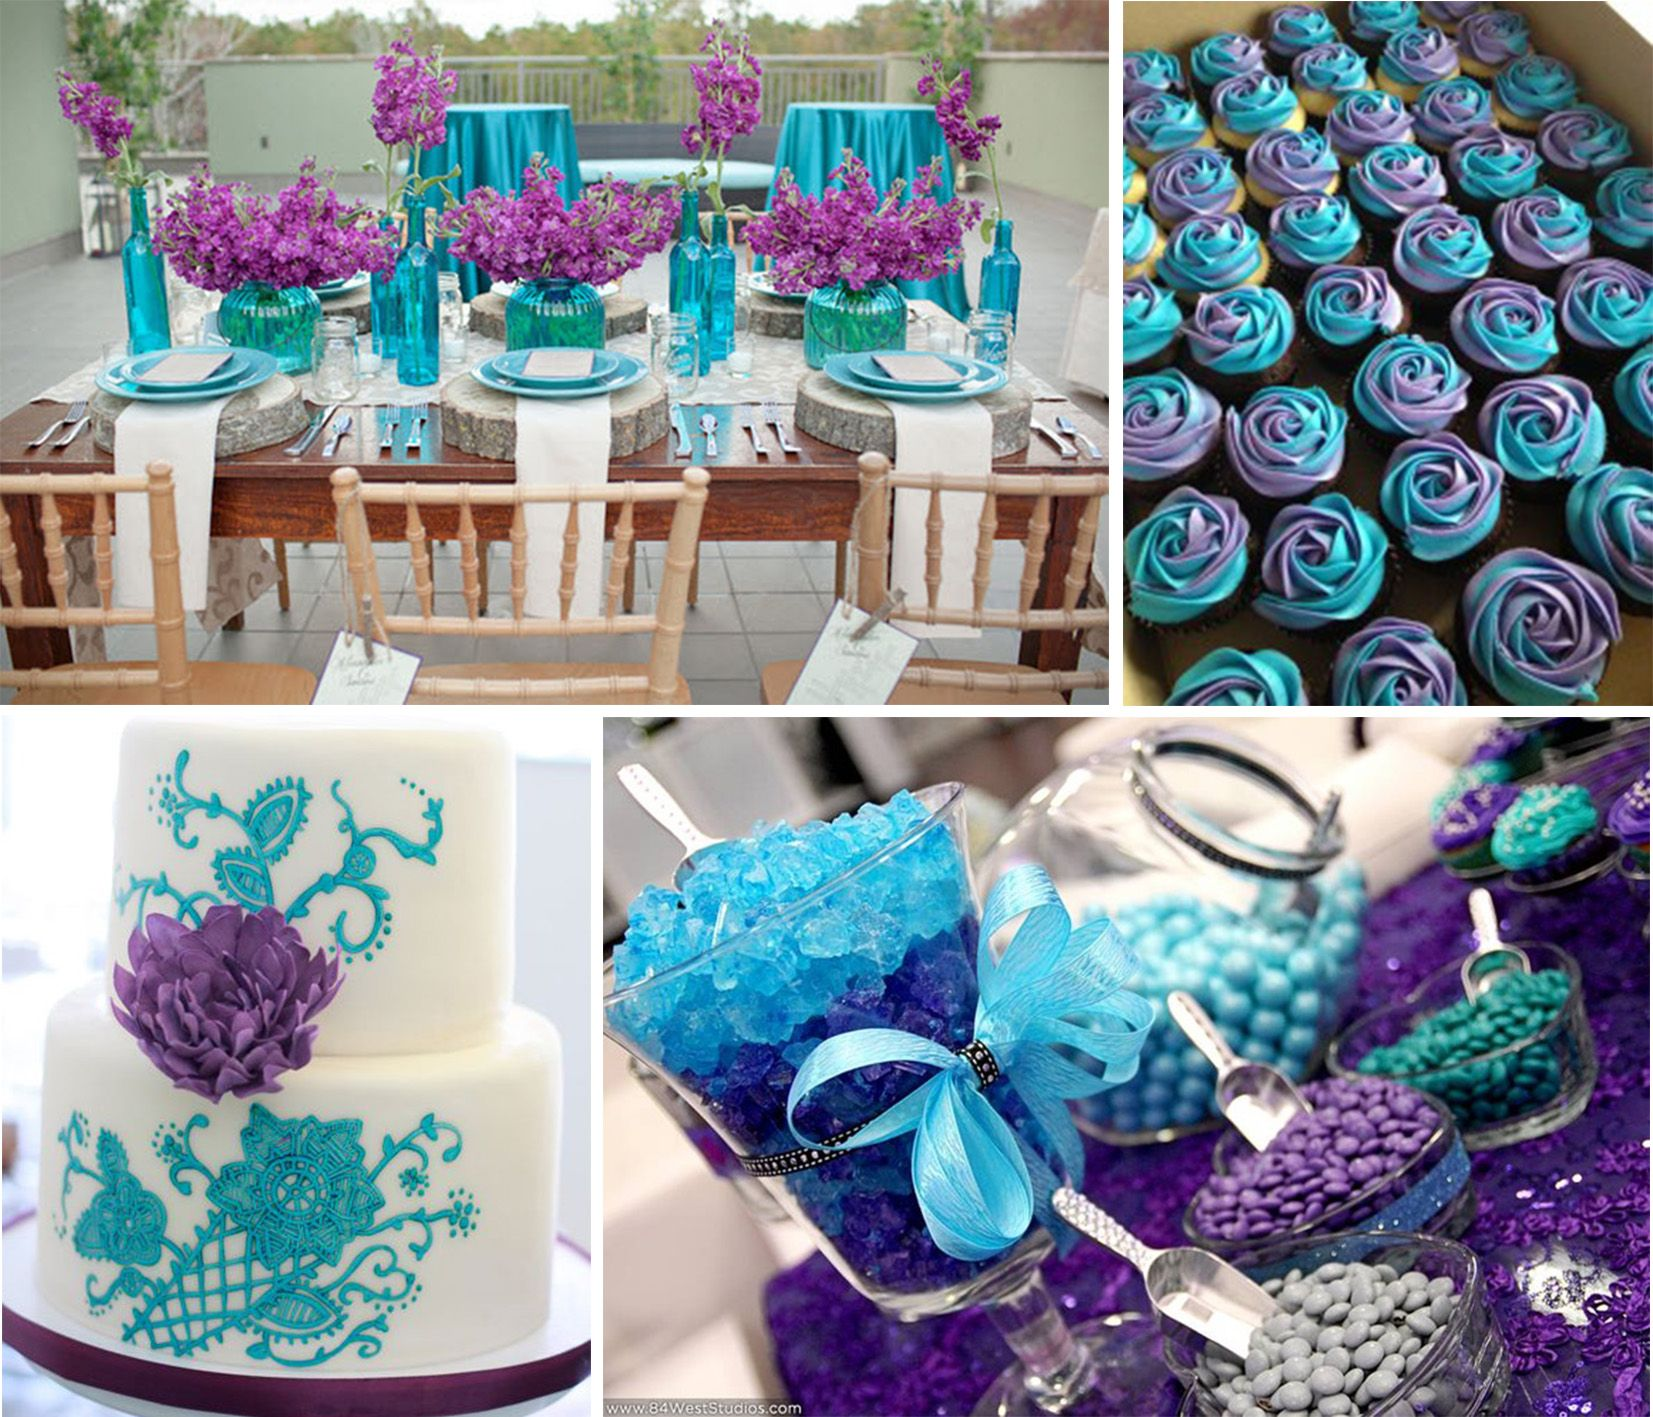 We Have Some Great Inspiring Purple And Teal Wedding Photos Showcasing The Best Ideas Decors